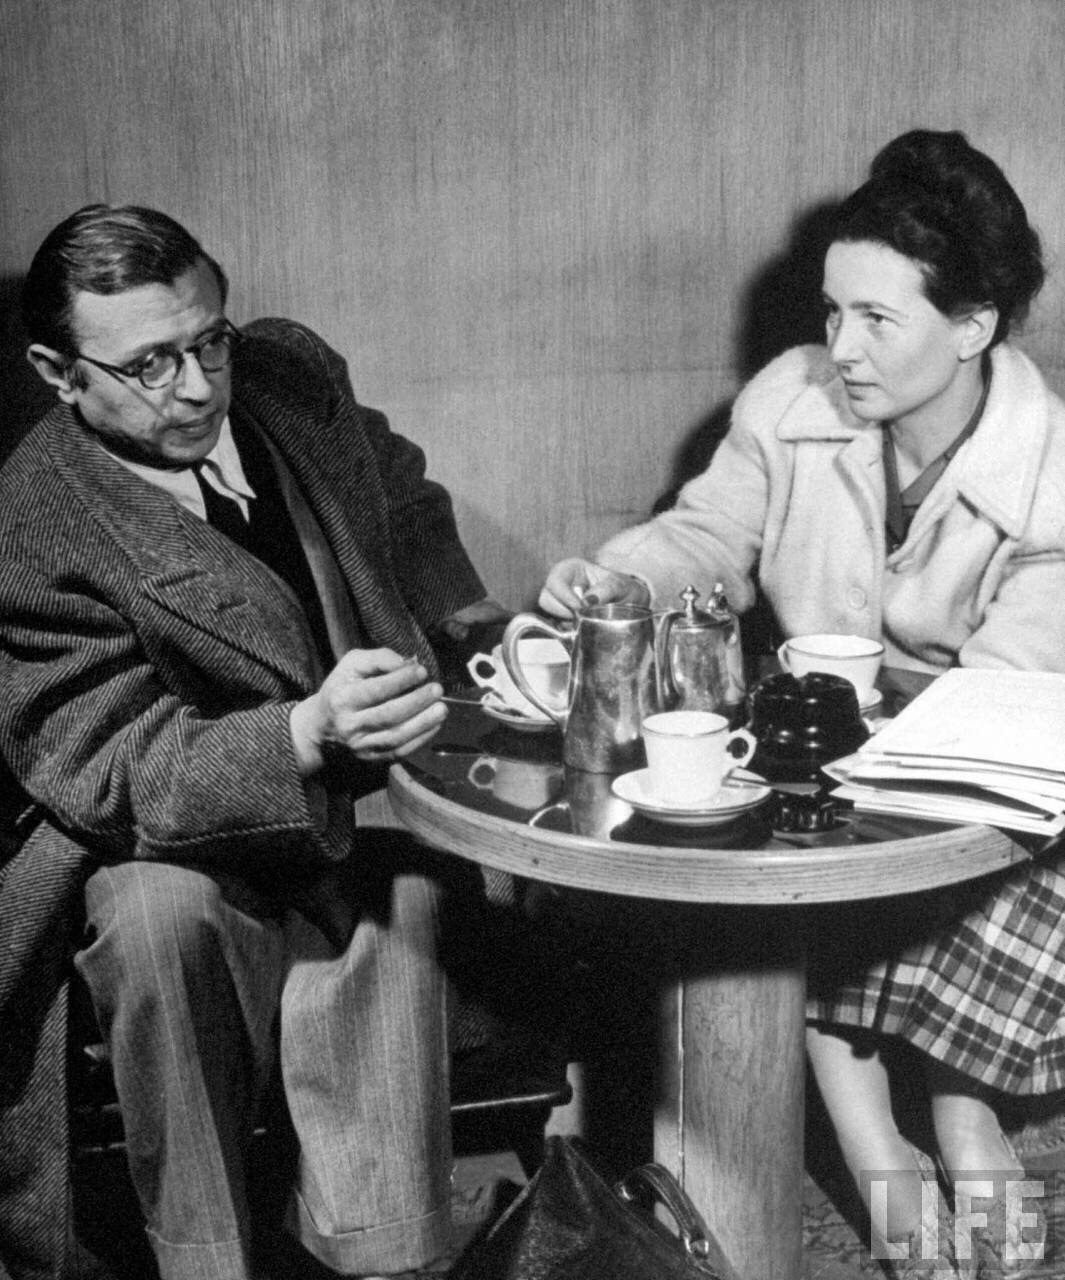 Jean-Paul Sartre and Simone de Beauvoir sitting at a cafe